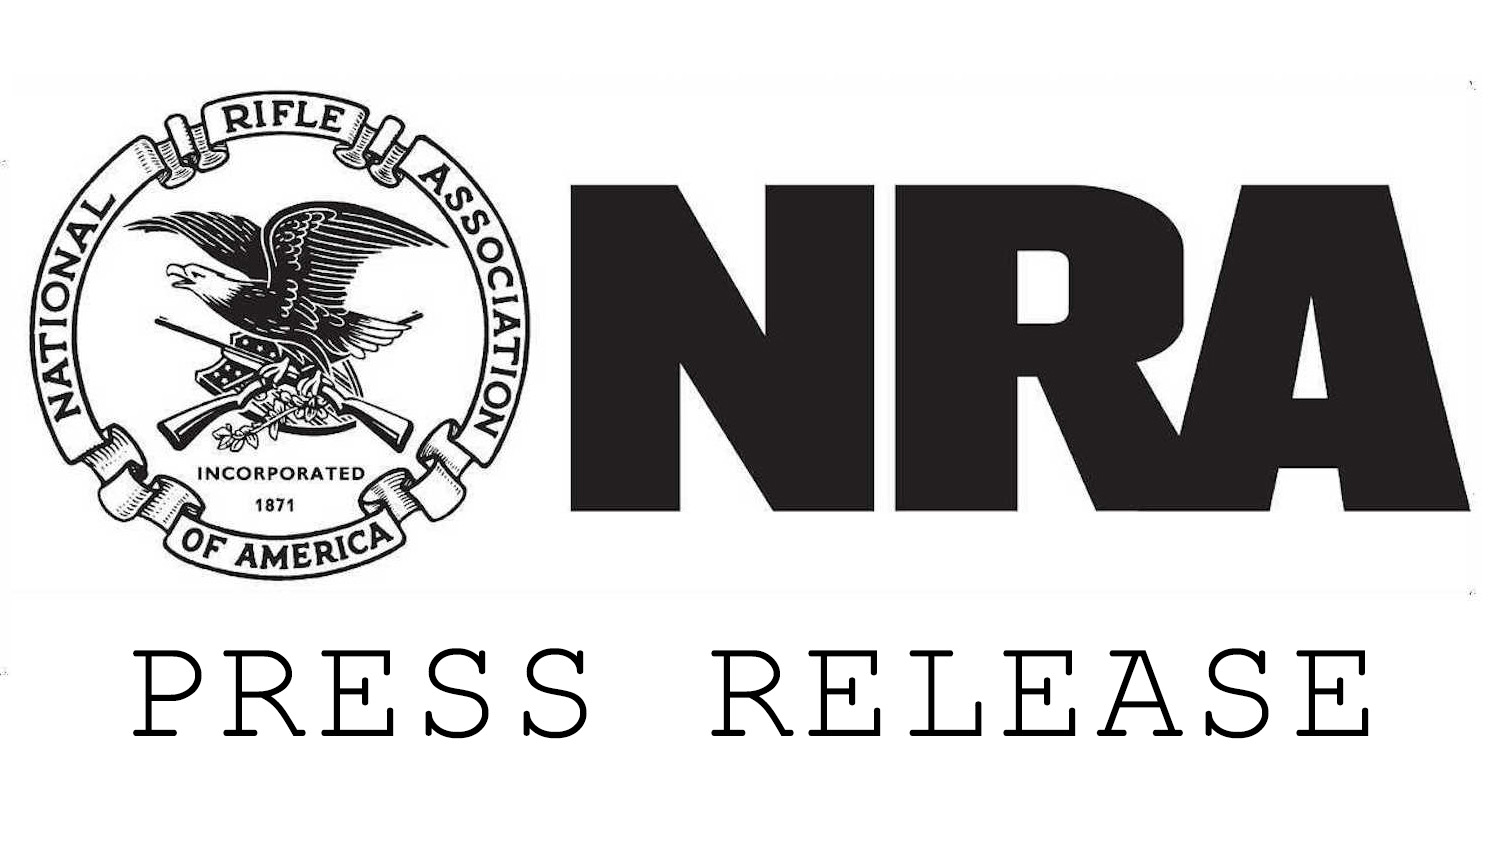 Registration Now Open For The 2018 NRA World Shooting Championship Presented by Kimber